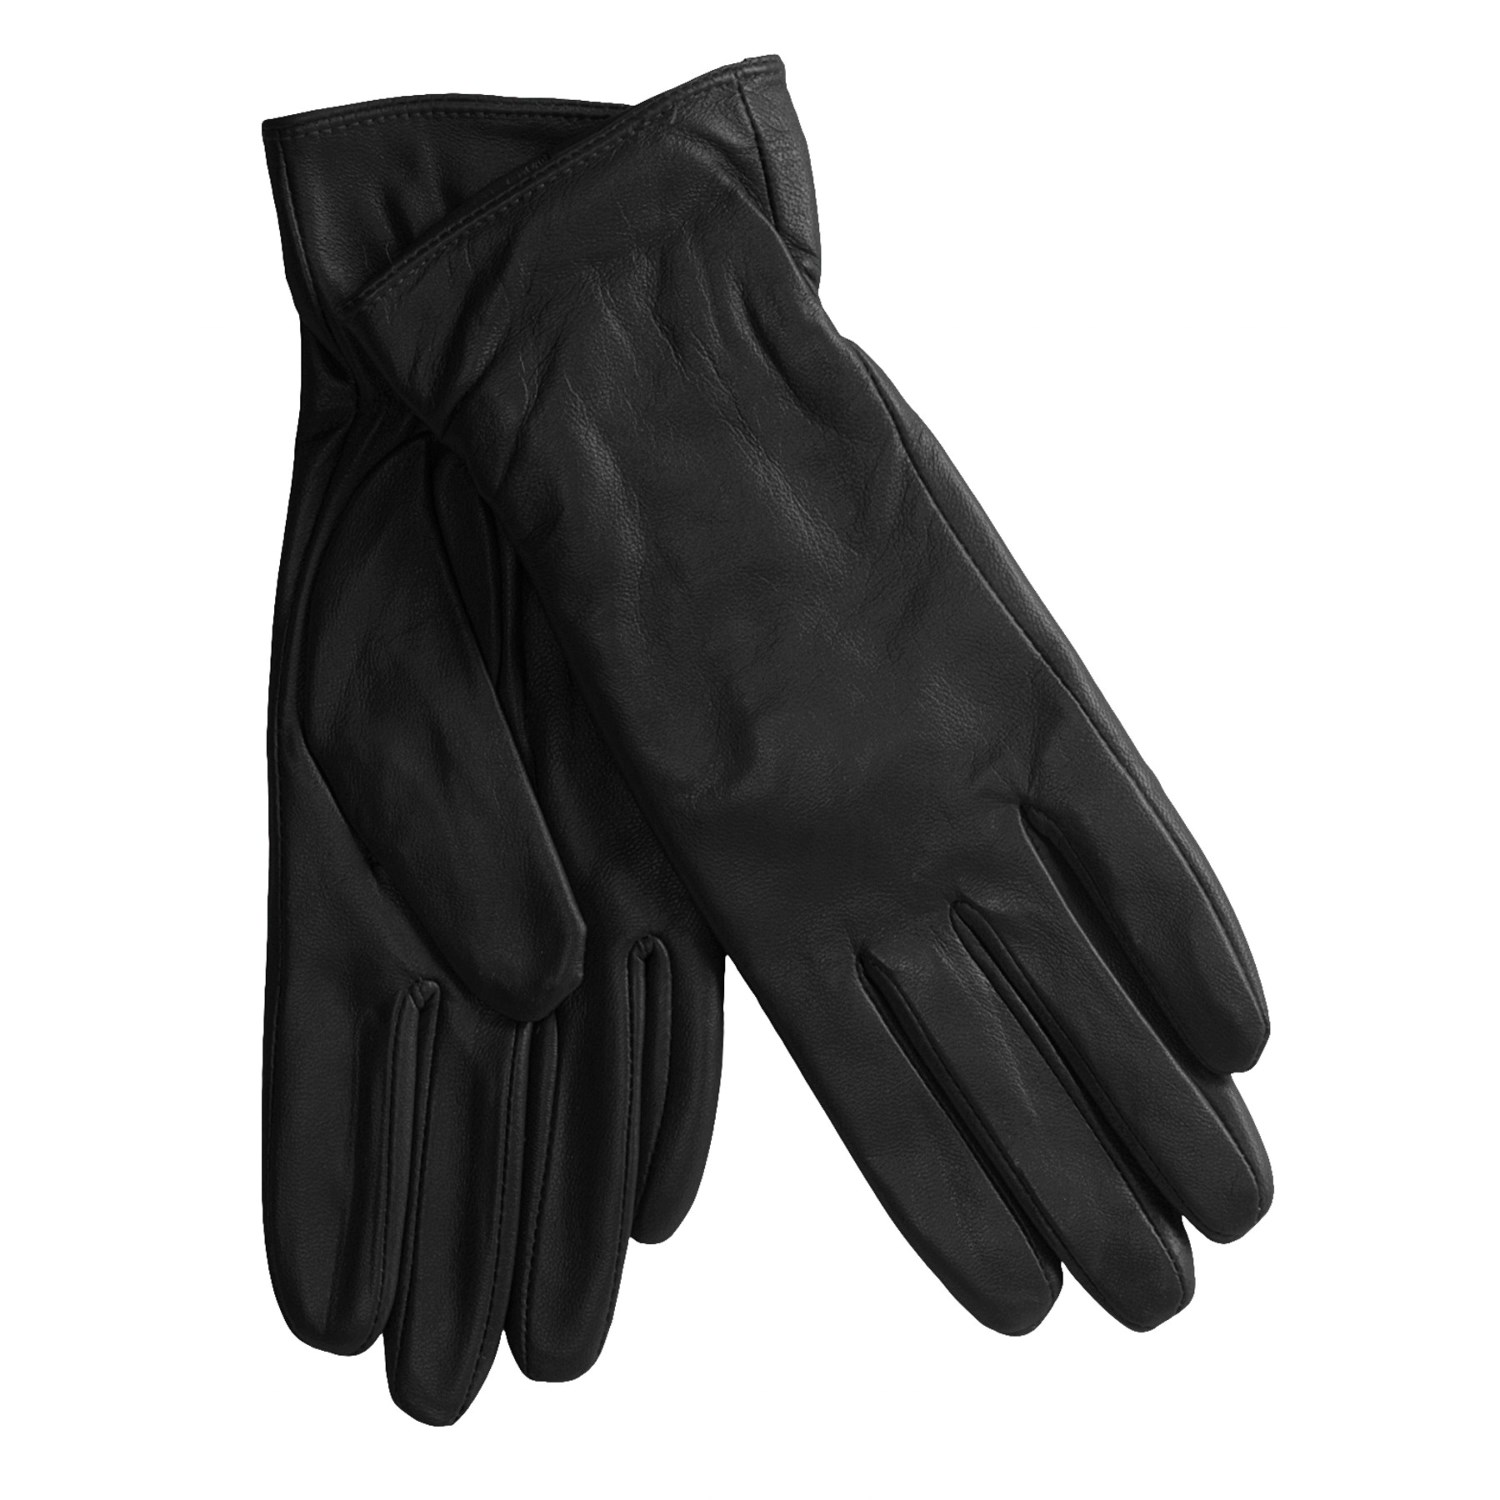 Black leather gloves female - Excelled Lambskin Leather Gloves For Women 2494c Save 93 Black Leather Gloves Women